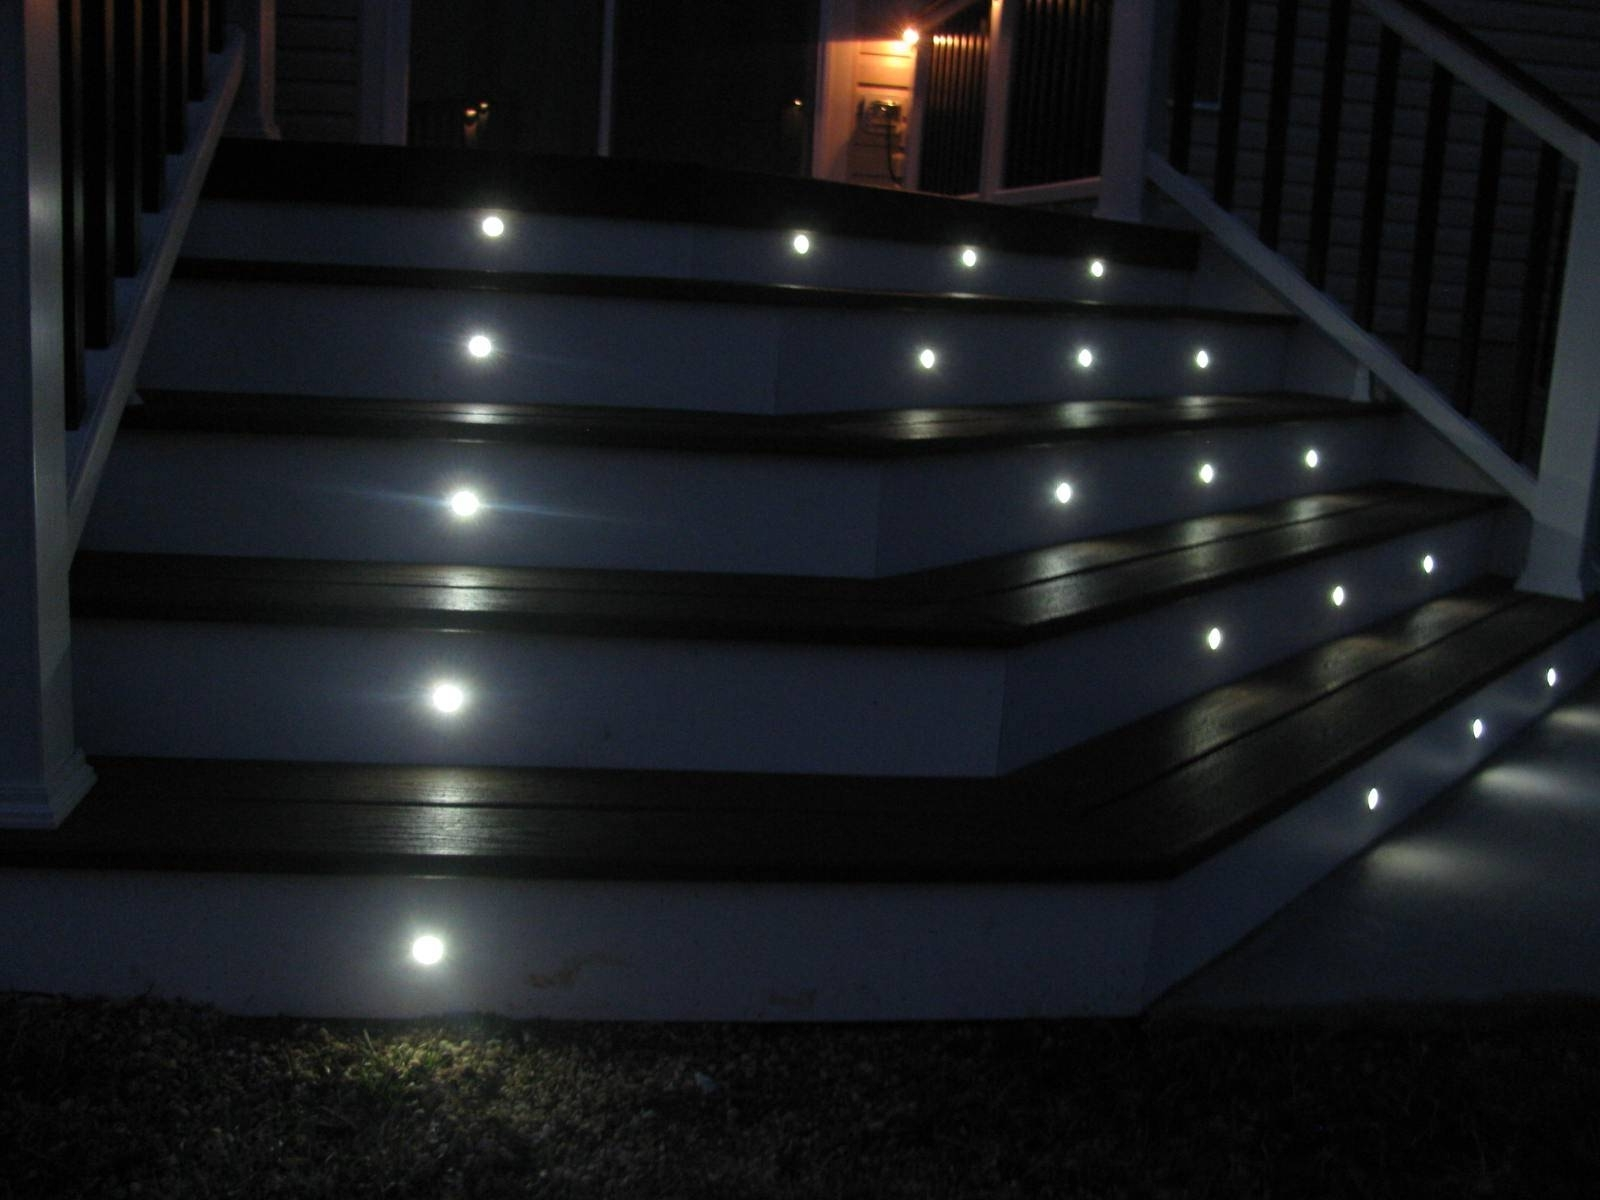 Widely Used Stunning New Led Strip Deck Lighting Pics Of Lights Popular And Home Inside Low Voltage Deck Lighting At Home Depot (View 20 of 20)